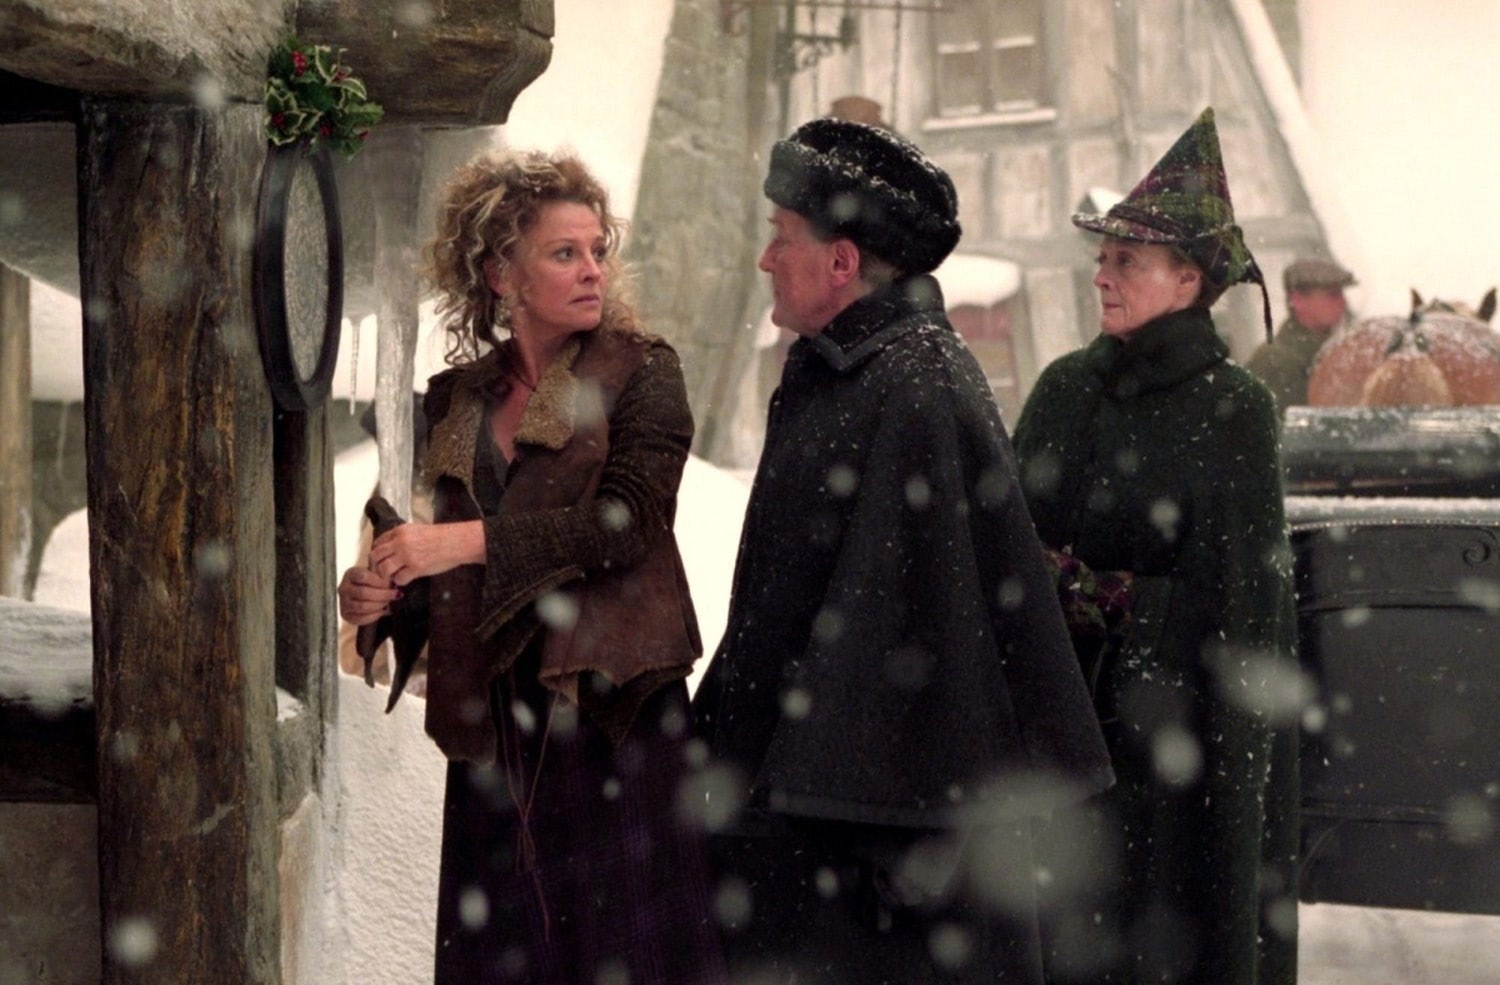 Rosmerta, Fudge and McGonagall enter The Three Broomsticks